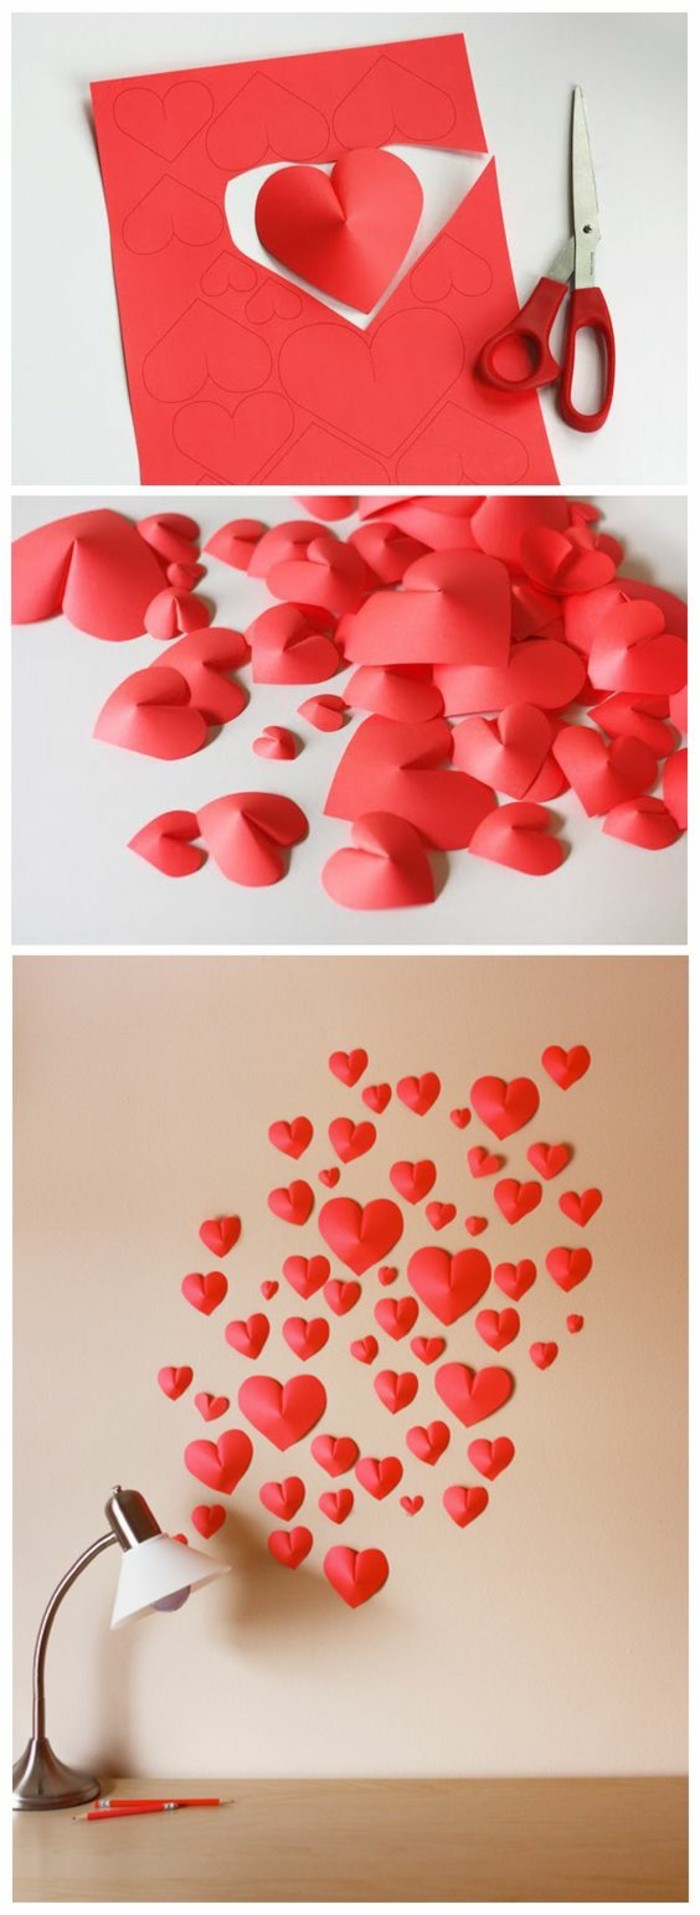 red paper hearts, arranged together on a beige wall, diy living room decor, over a wooden desk